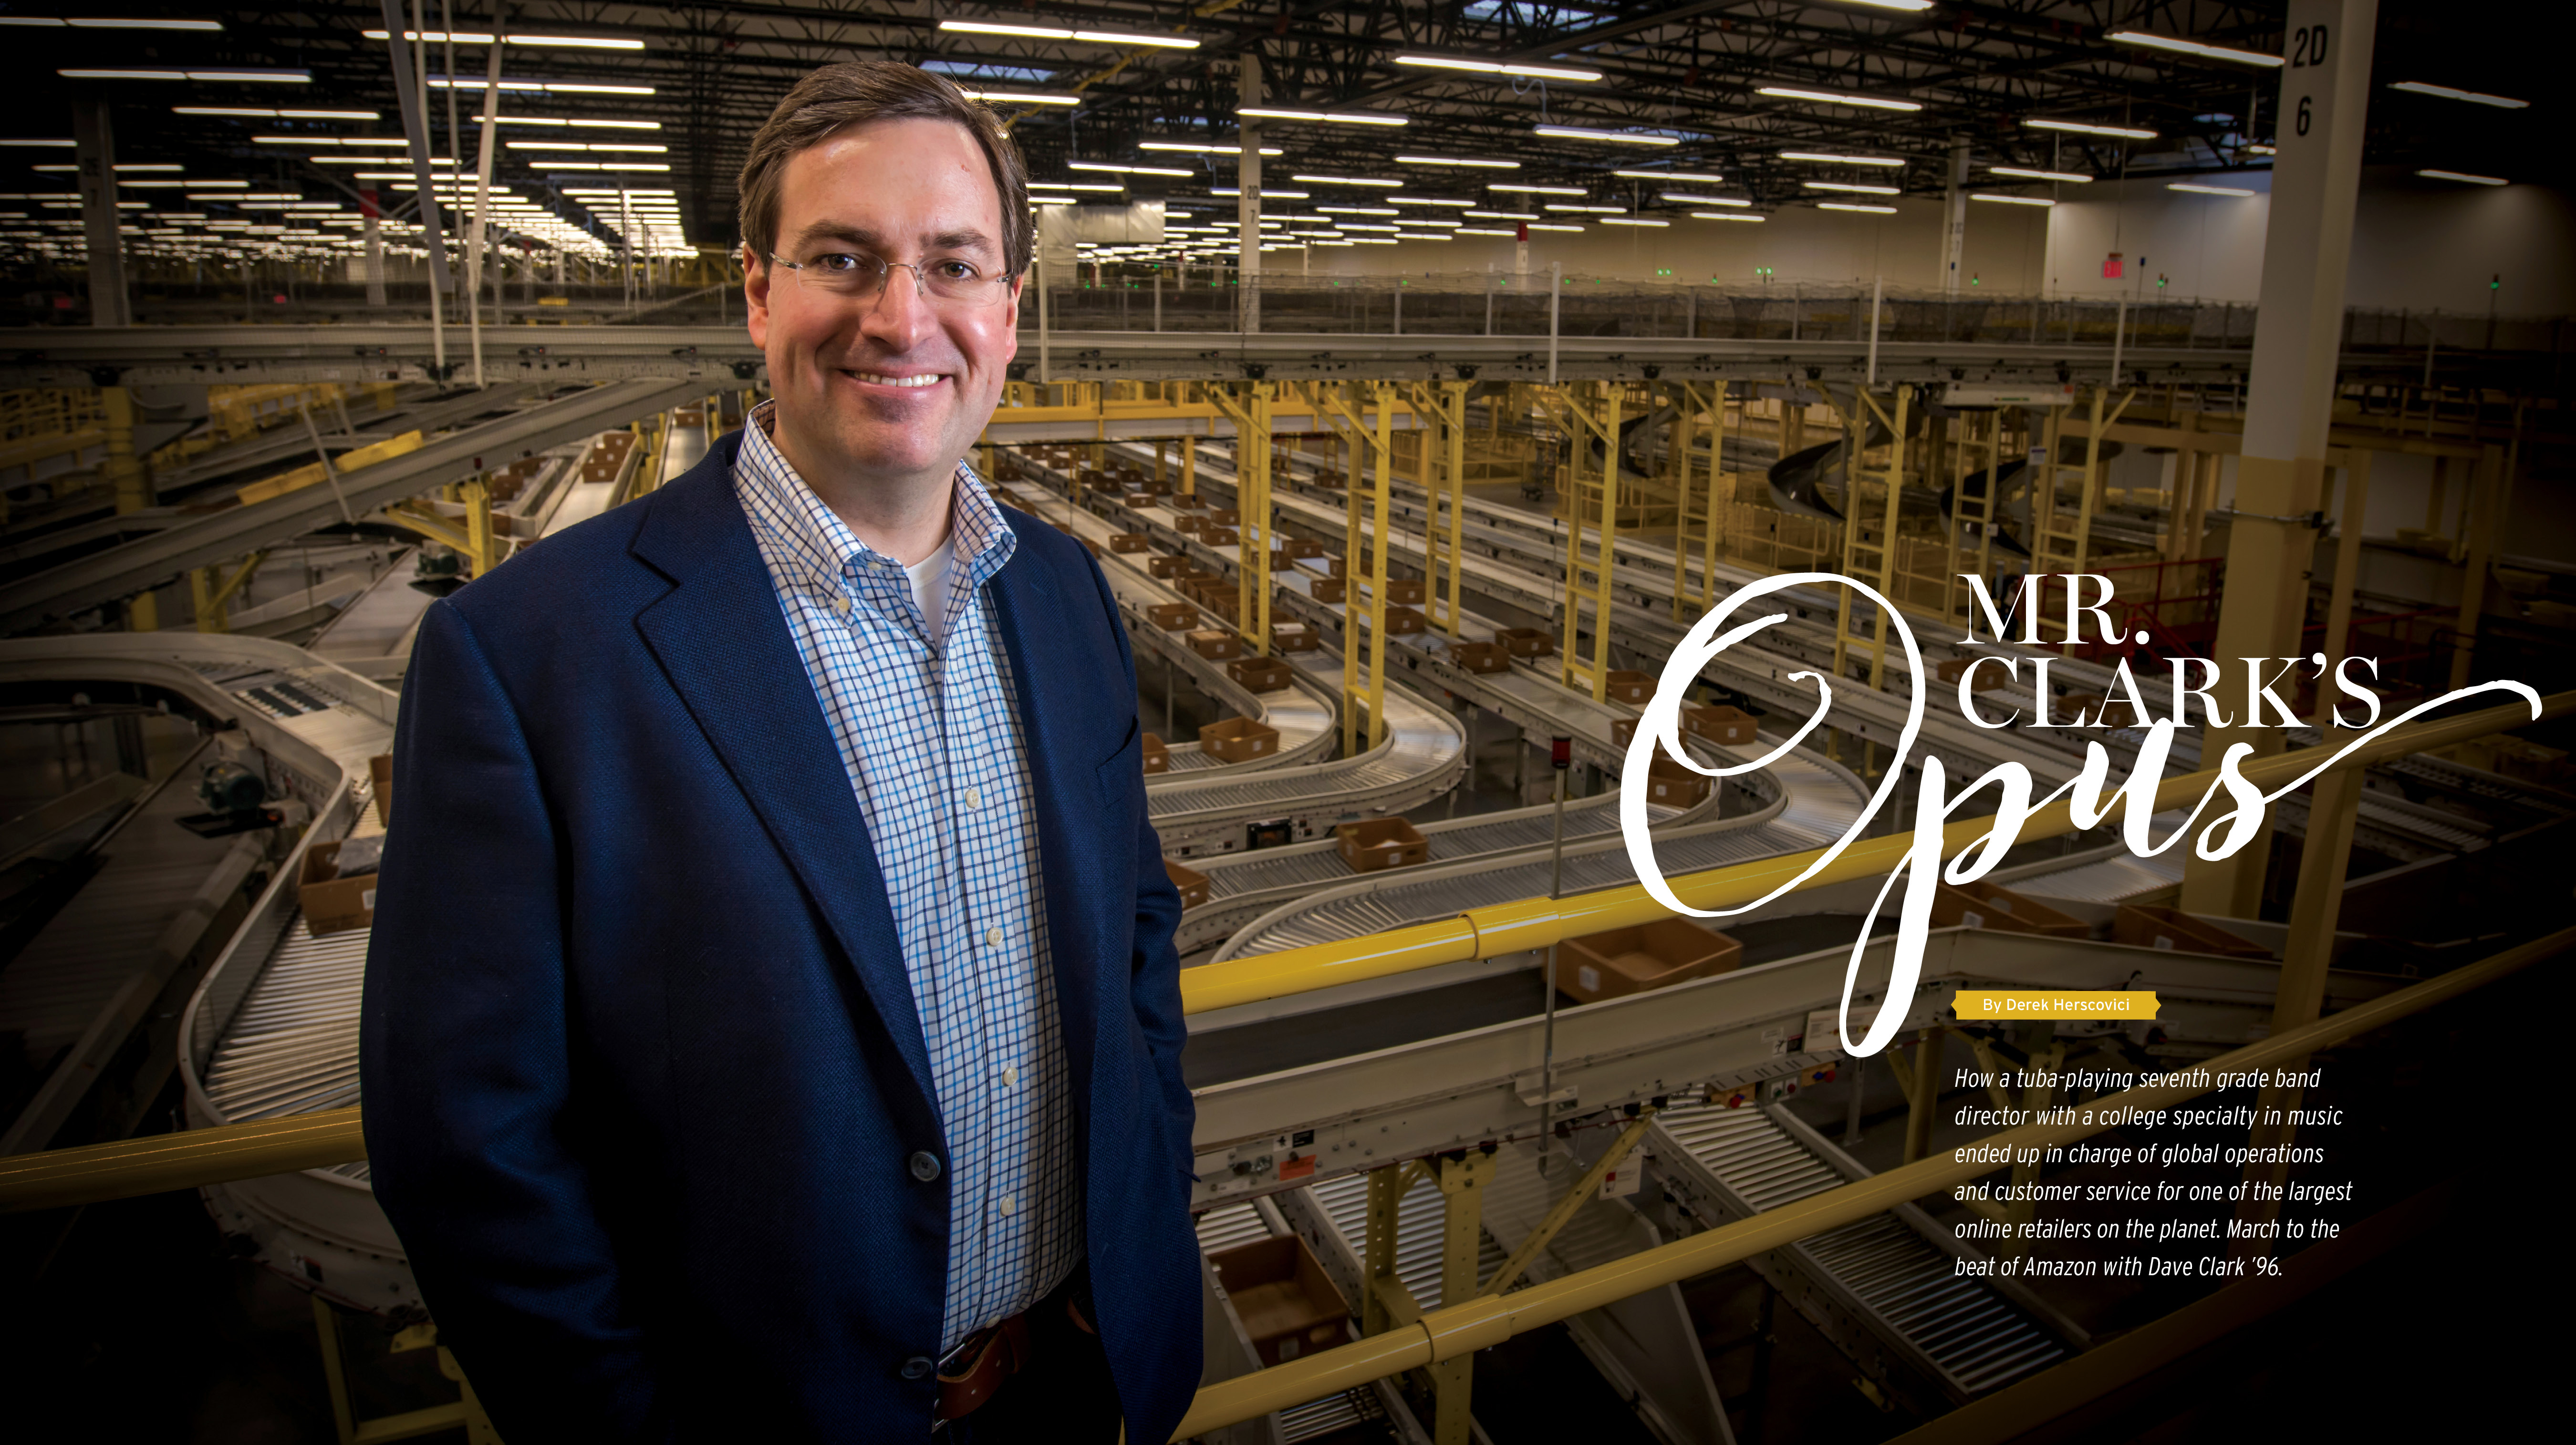 Mr. Clark's Opus by Derek Herscovici; How a tube-playing seventh grade band director with a college specialty in music ended up in charge of global operations and customer service for one of the largest online retailers on the planet. March to the beat of Amazon with Dave Clark '96.